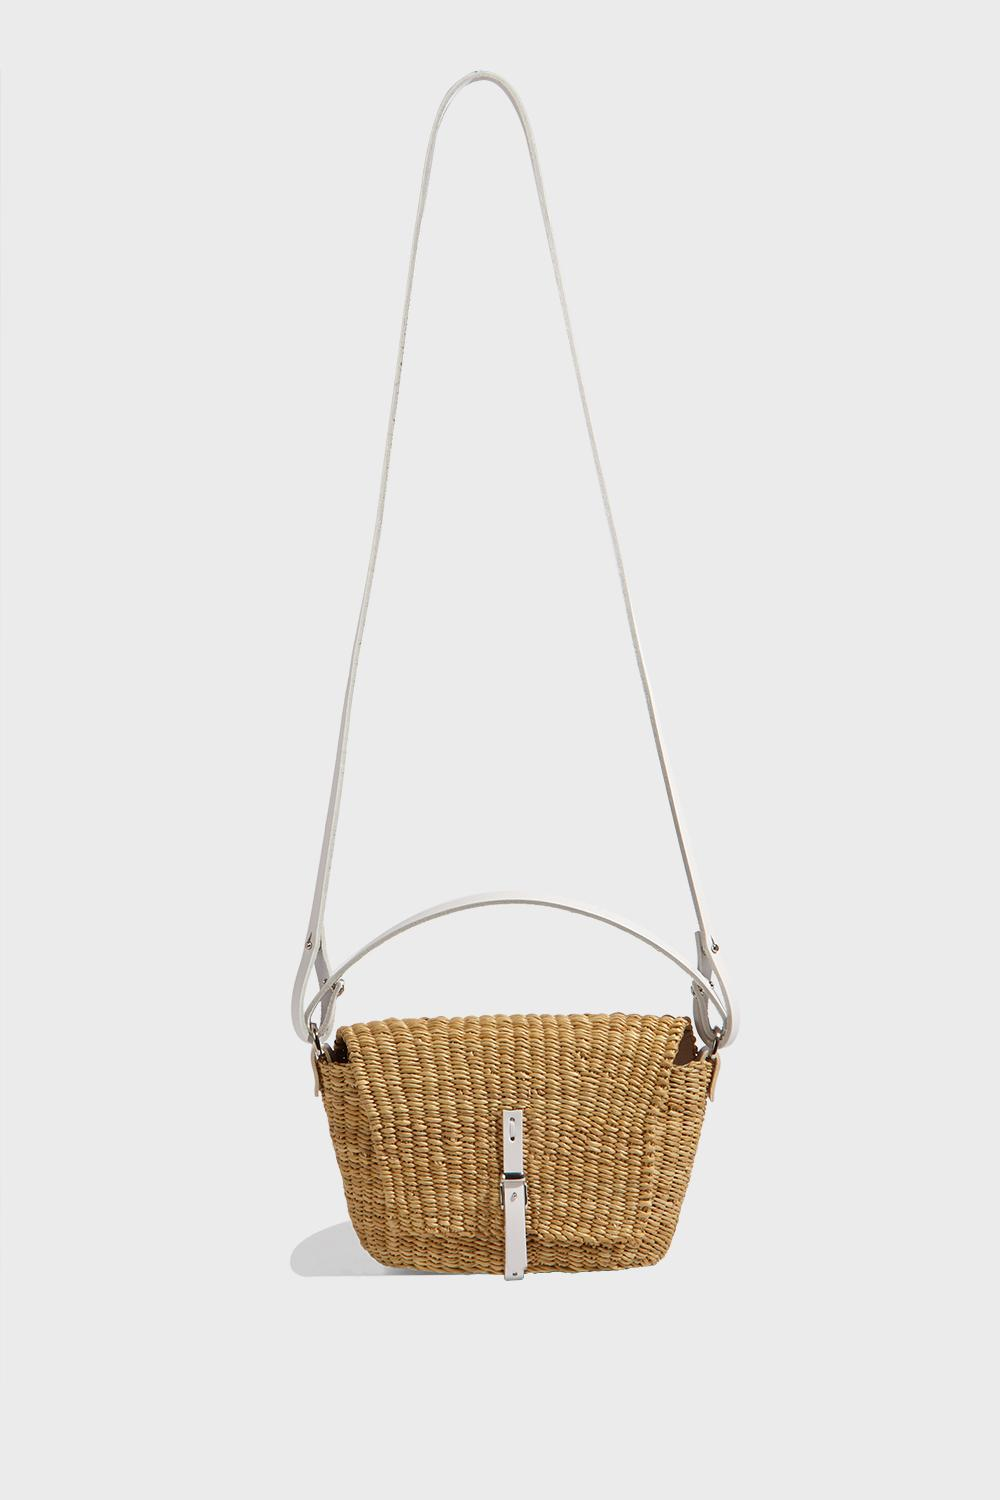 MUUN HOLLY HAND-WOVEN STRAW BAG, SIZE OS, WOMEN, BEIGE